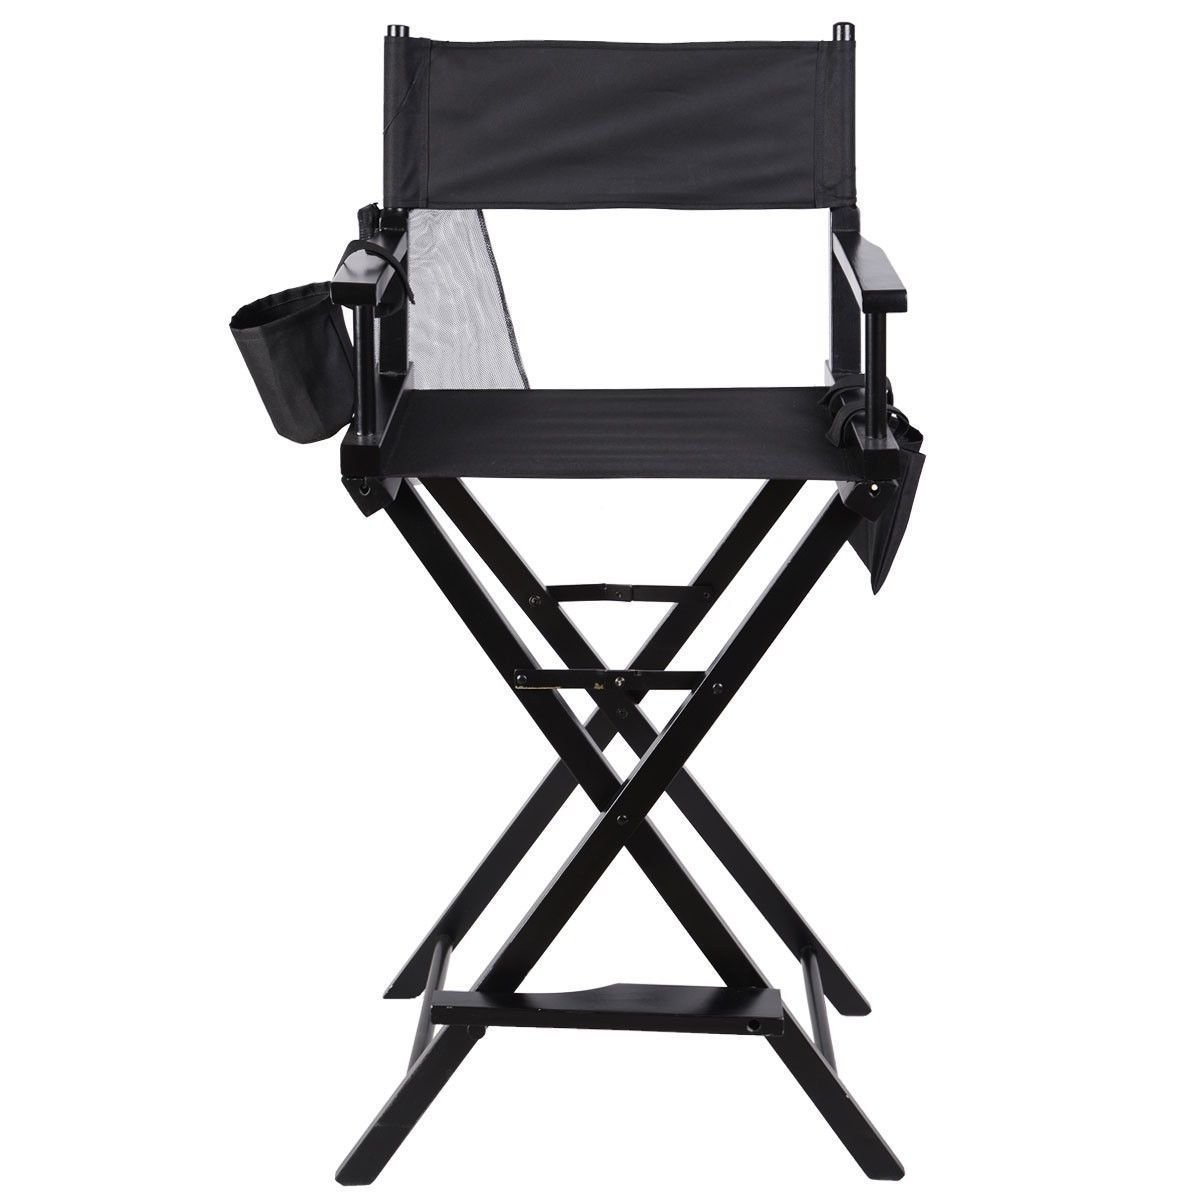 Heaven Tvcz Artist Directors Chair Wood Makeup Professional Black New Foldable Light Weight For Beauty Makeup Artists